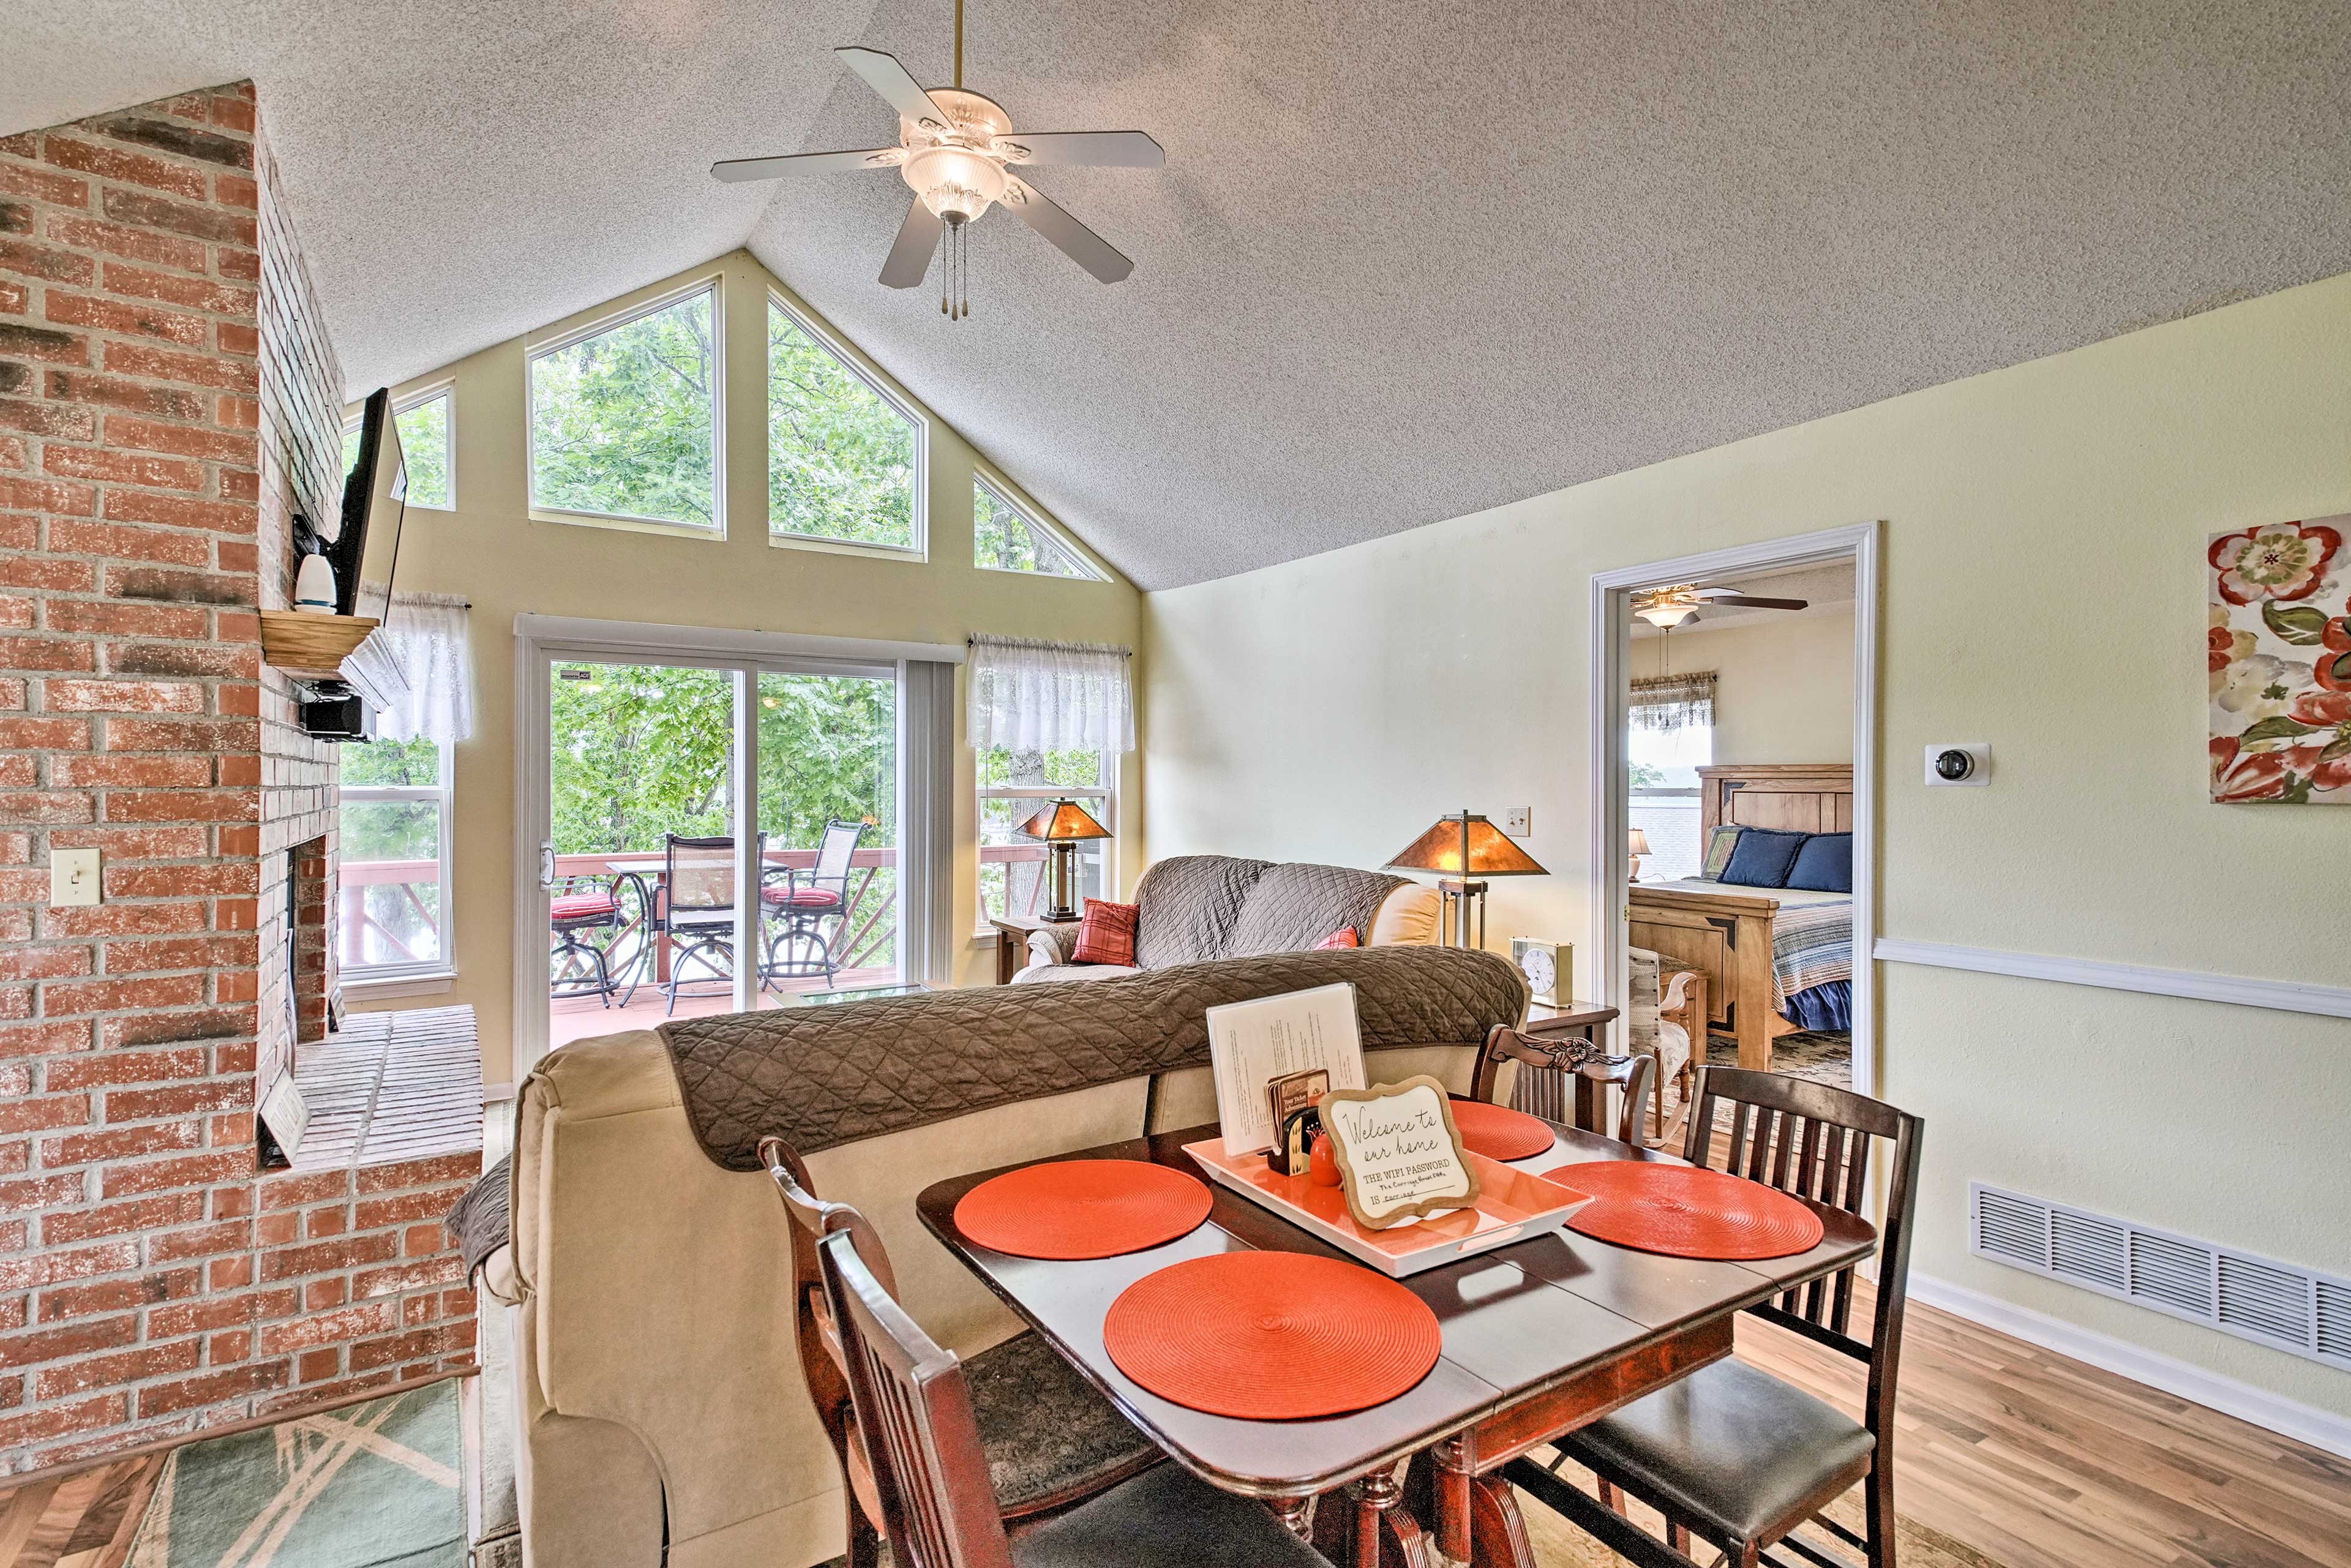 Find all of the info you need about the home and area on the dining table!